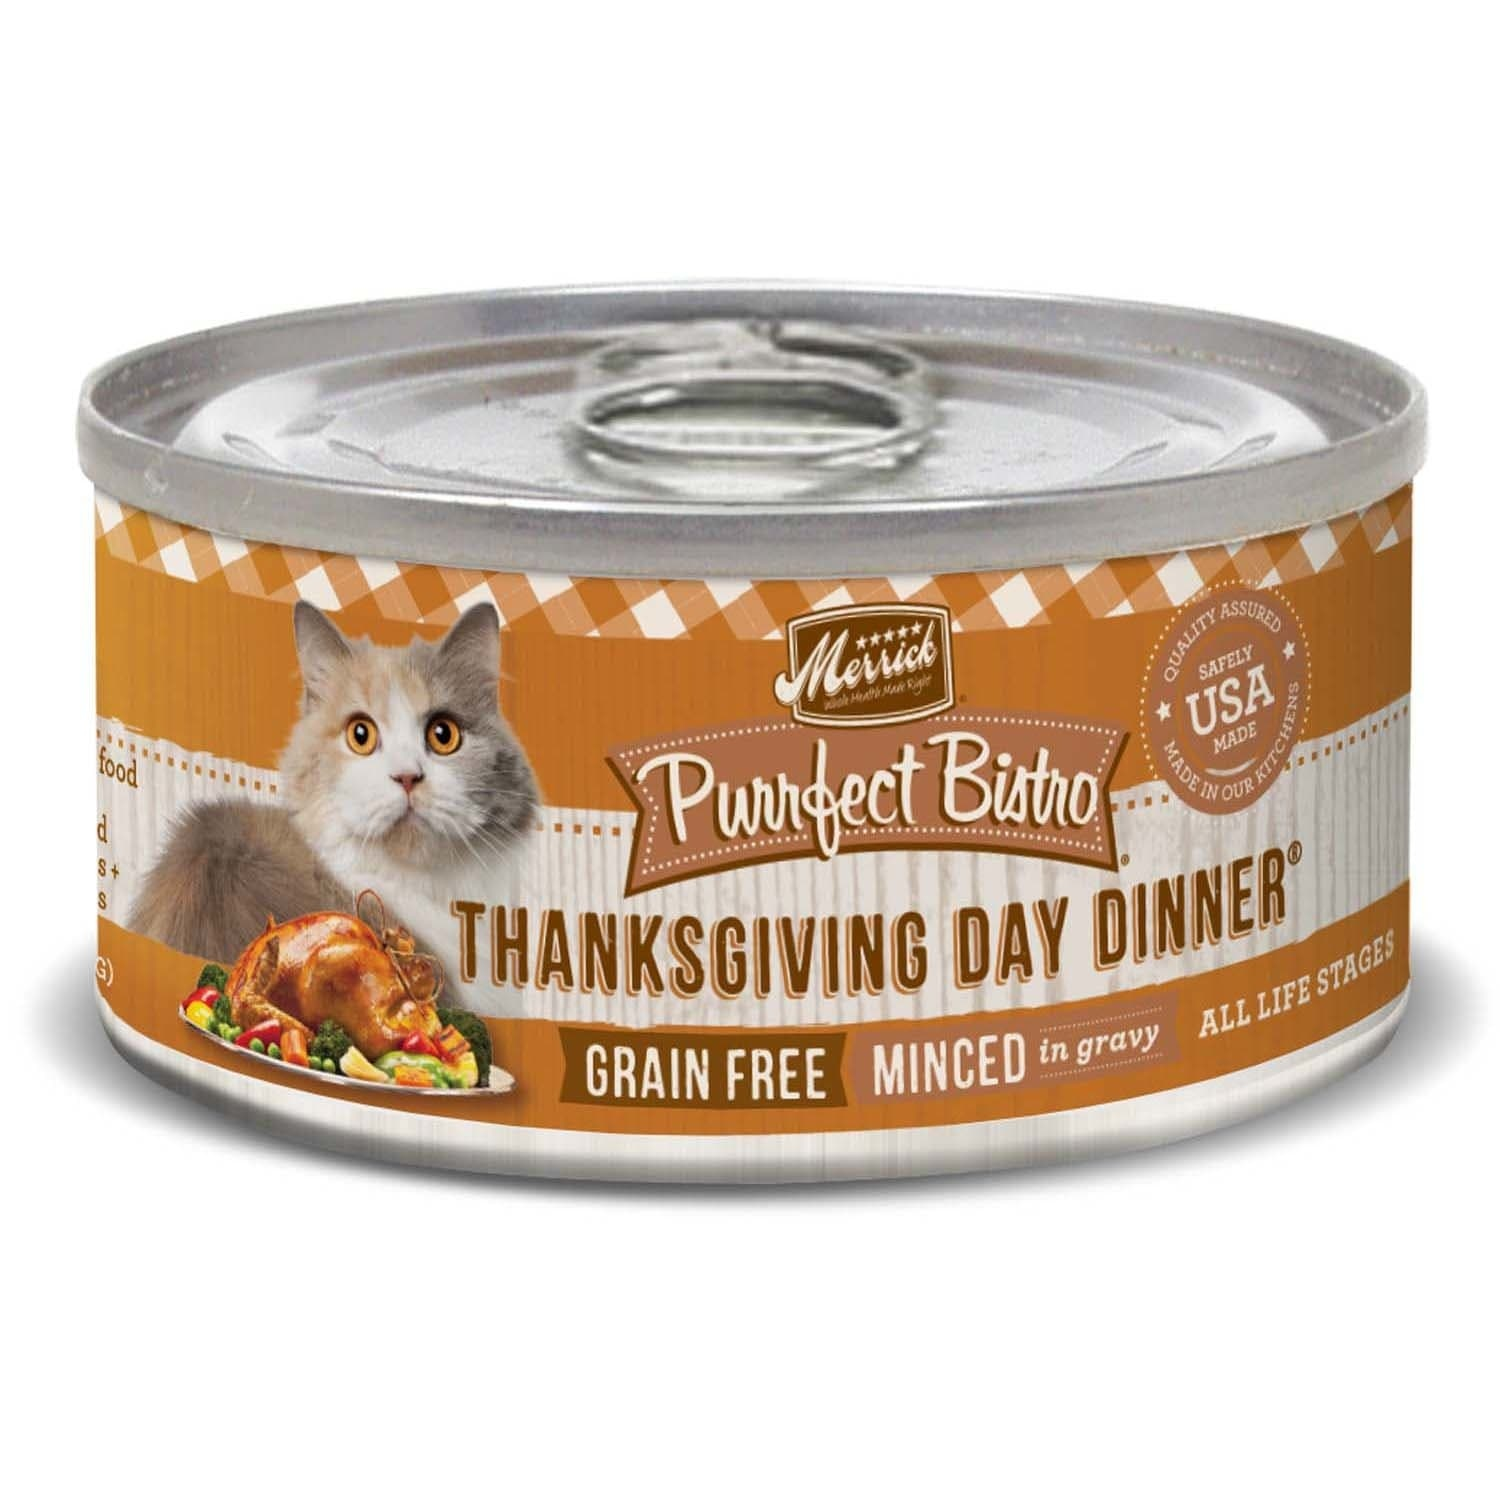 slide 1 of 1, Merrick Purrfect Bistro Grain Free Thanksgiving Day Dinner Canned Cat Food,